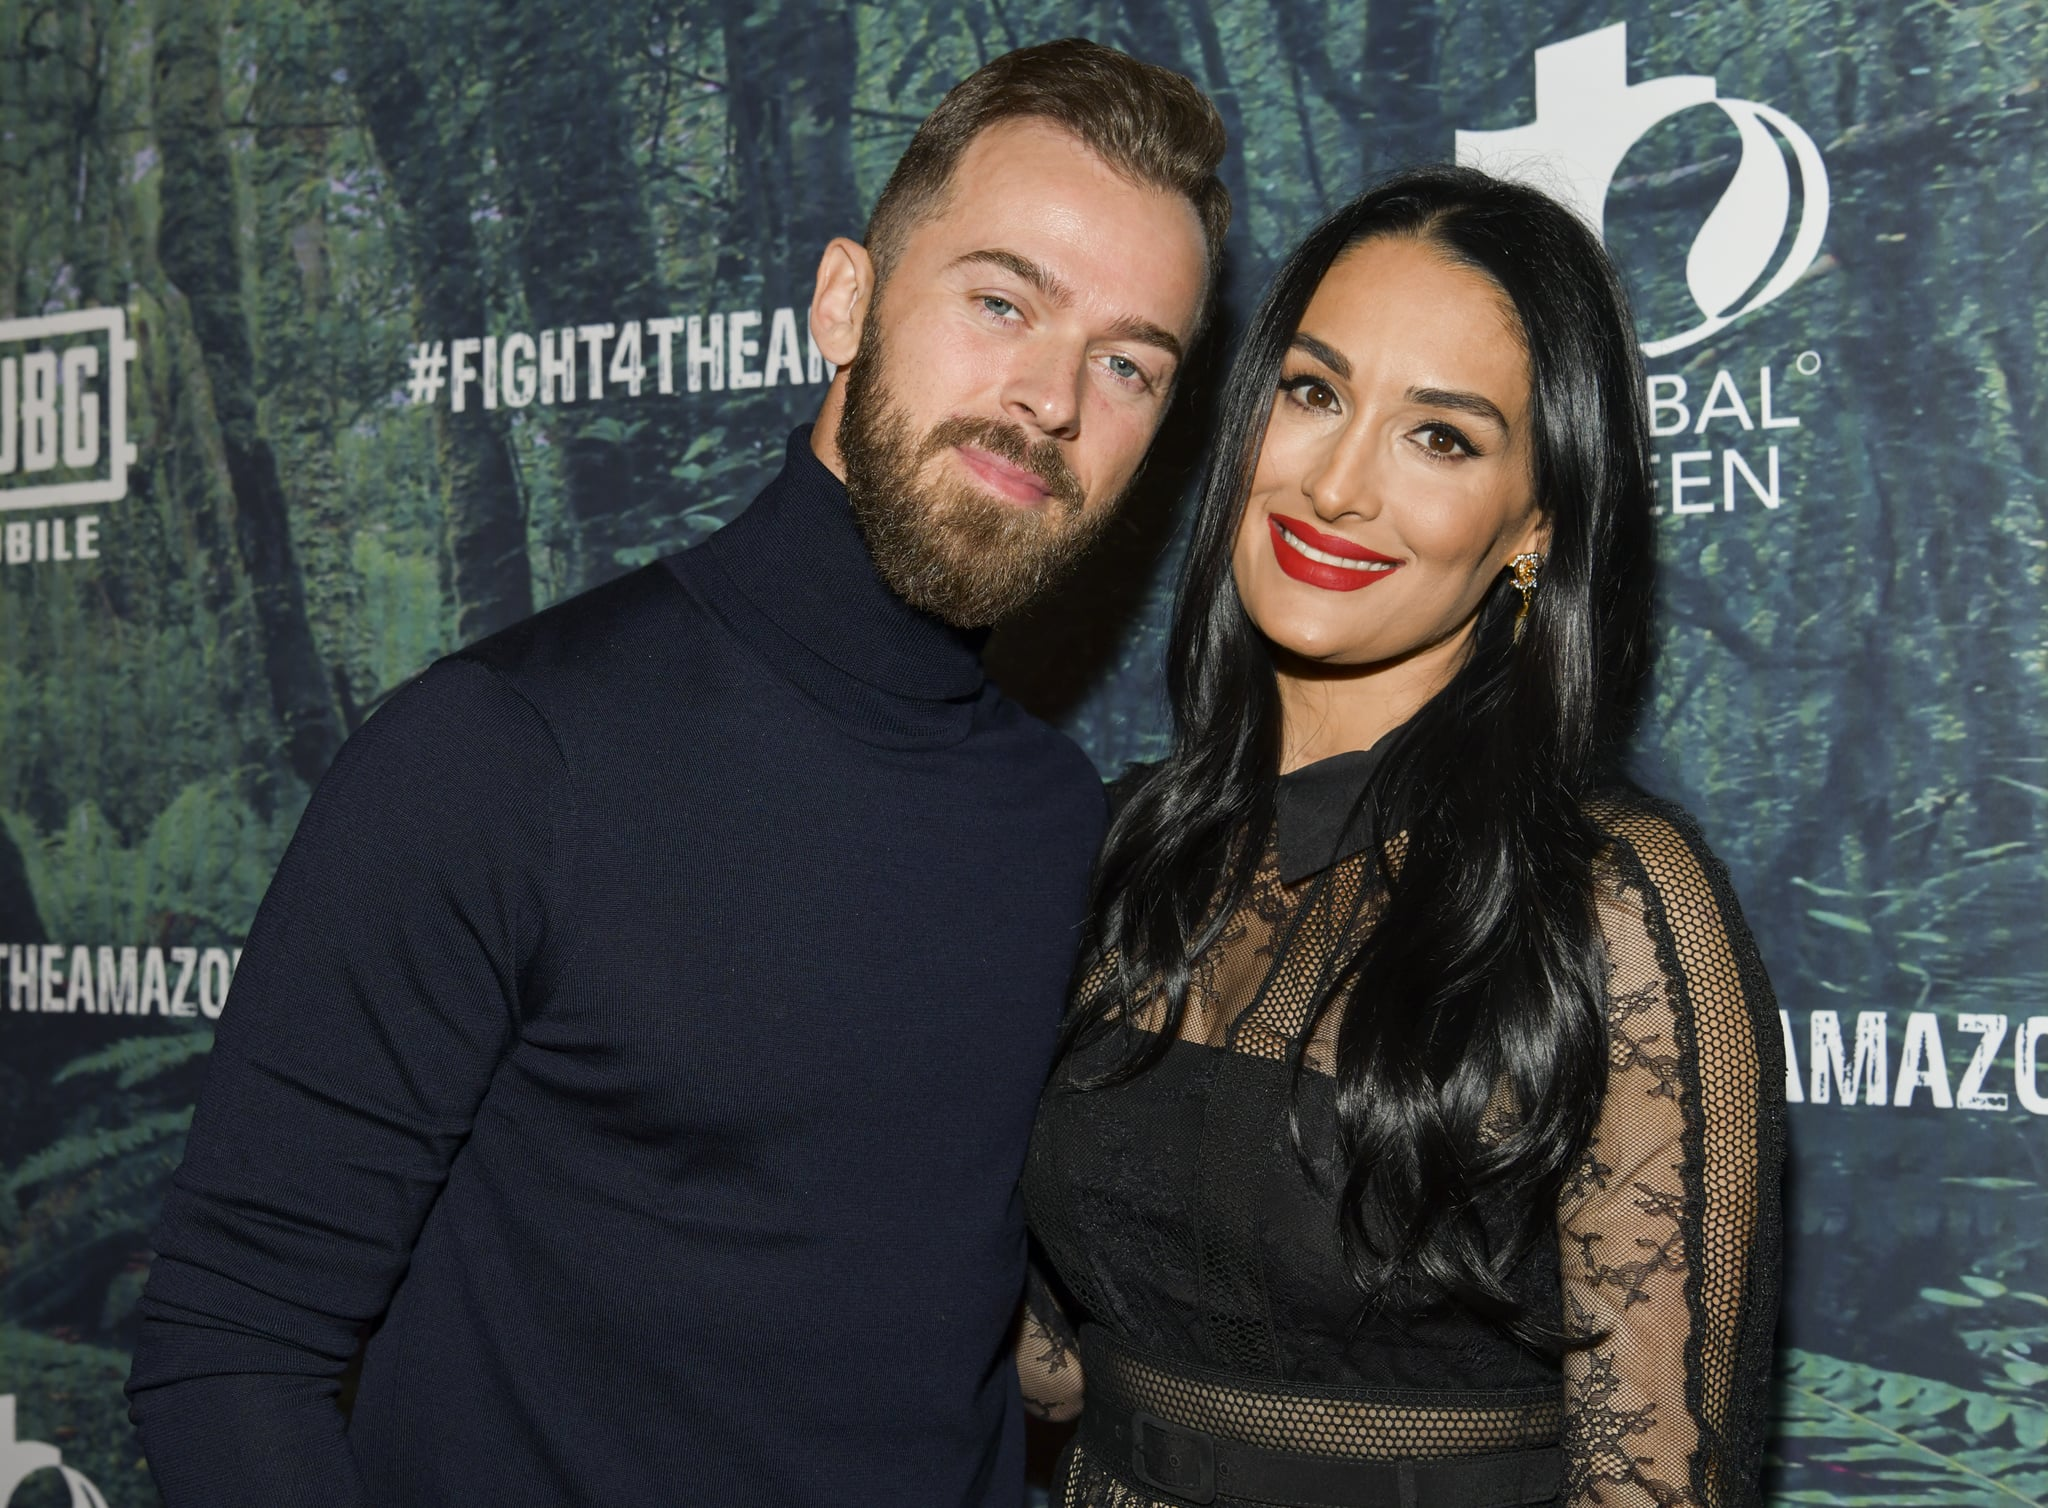 LOS ANGELES, CALIFORNIA - DECEMBER 09: Artem Chigvintsev (L) and Nikki Bella attend the PUBG Mobile's #FIGHT4THEAMAZON Event at Avalon Hollywood on December 09, 2019 in Los Angeles, California. (Photo by Rodin Eckenroth/Getty Images)